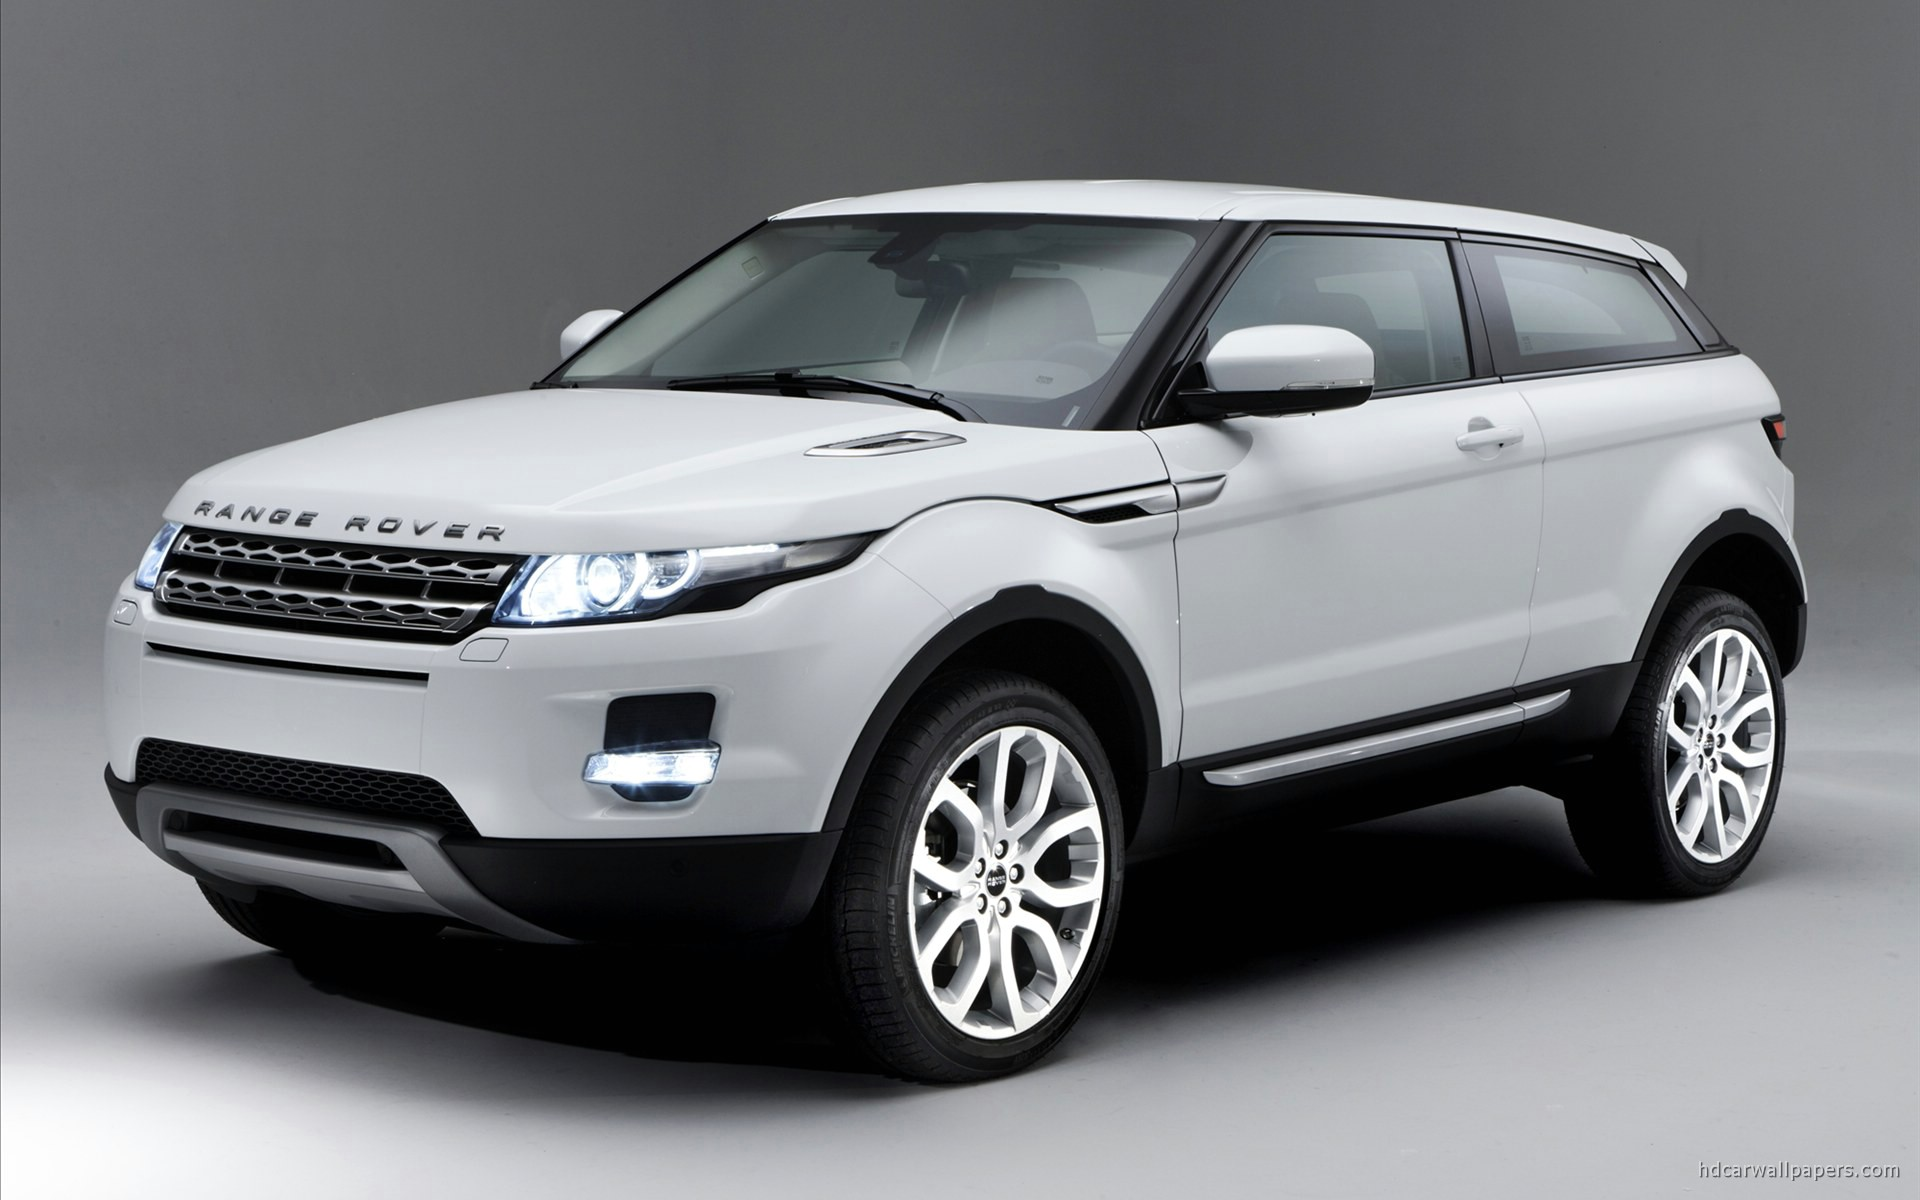 2011 Range Rover Evoque 5 Wallpaper Hd Car Wallpapers Id 1691